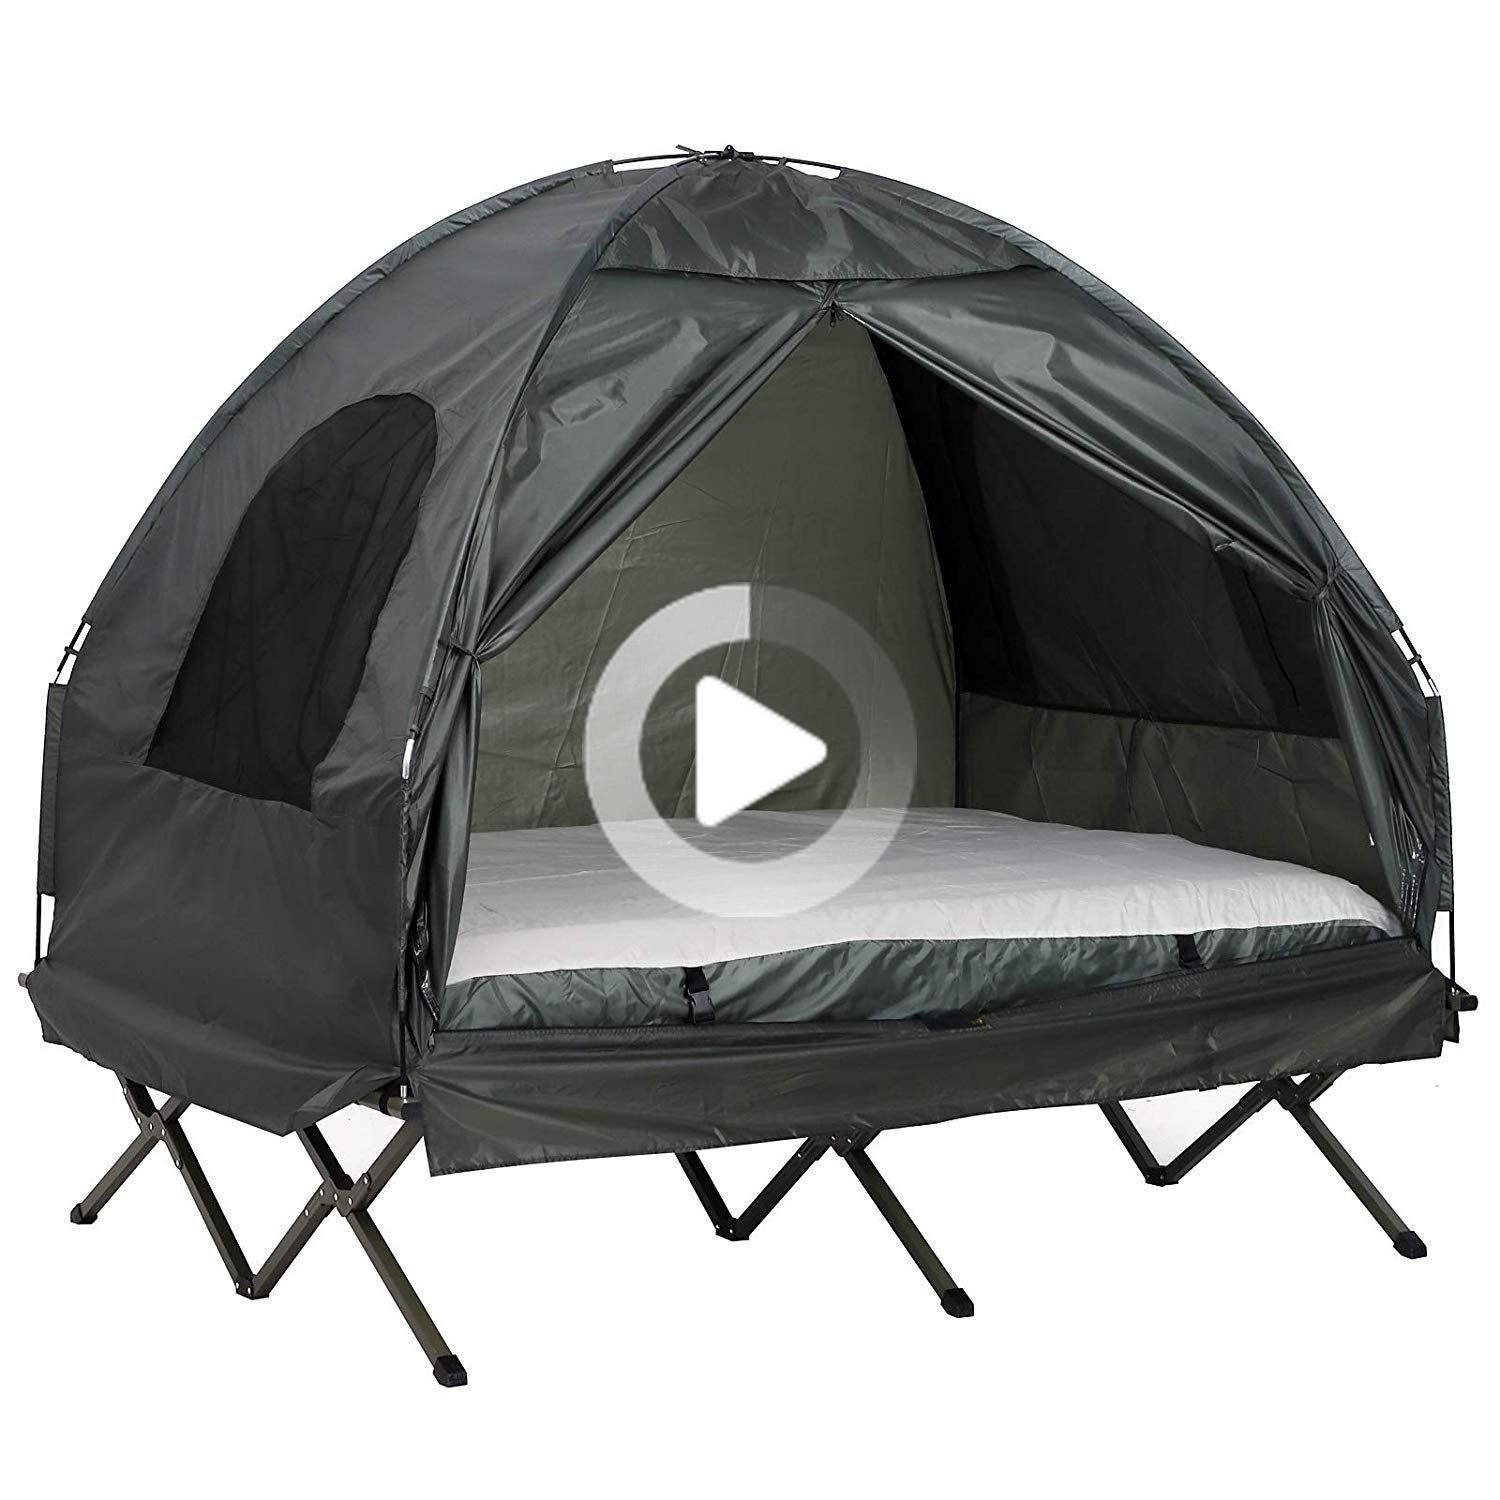 Outsunny Outdoor Travel Double Camping Cot Tent Green In 2020 Camping Cot Tent Cot